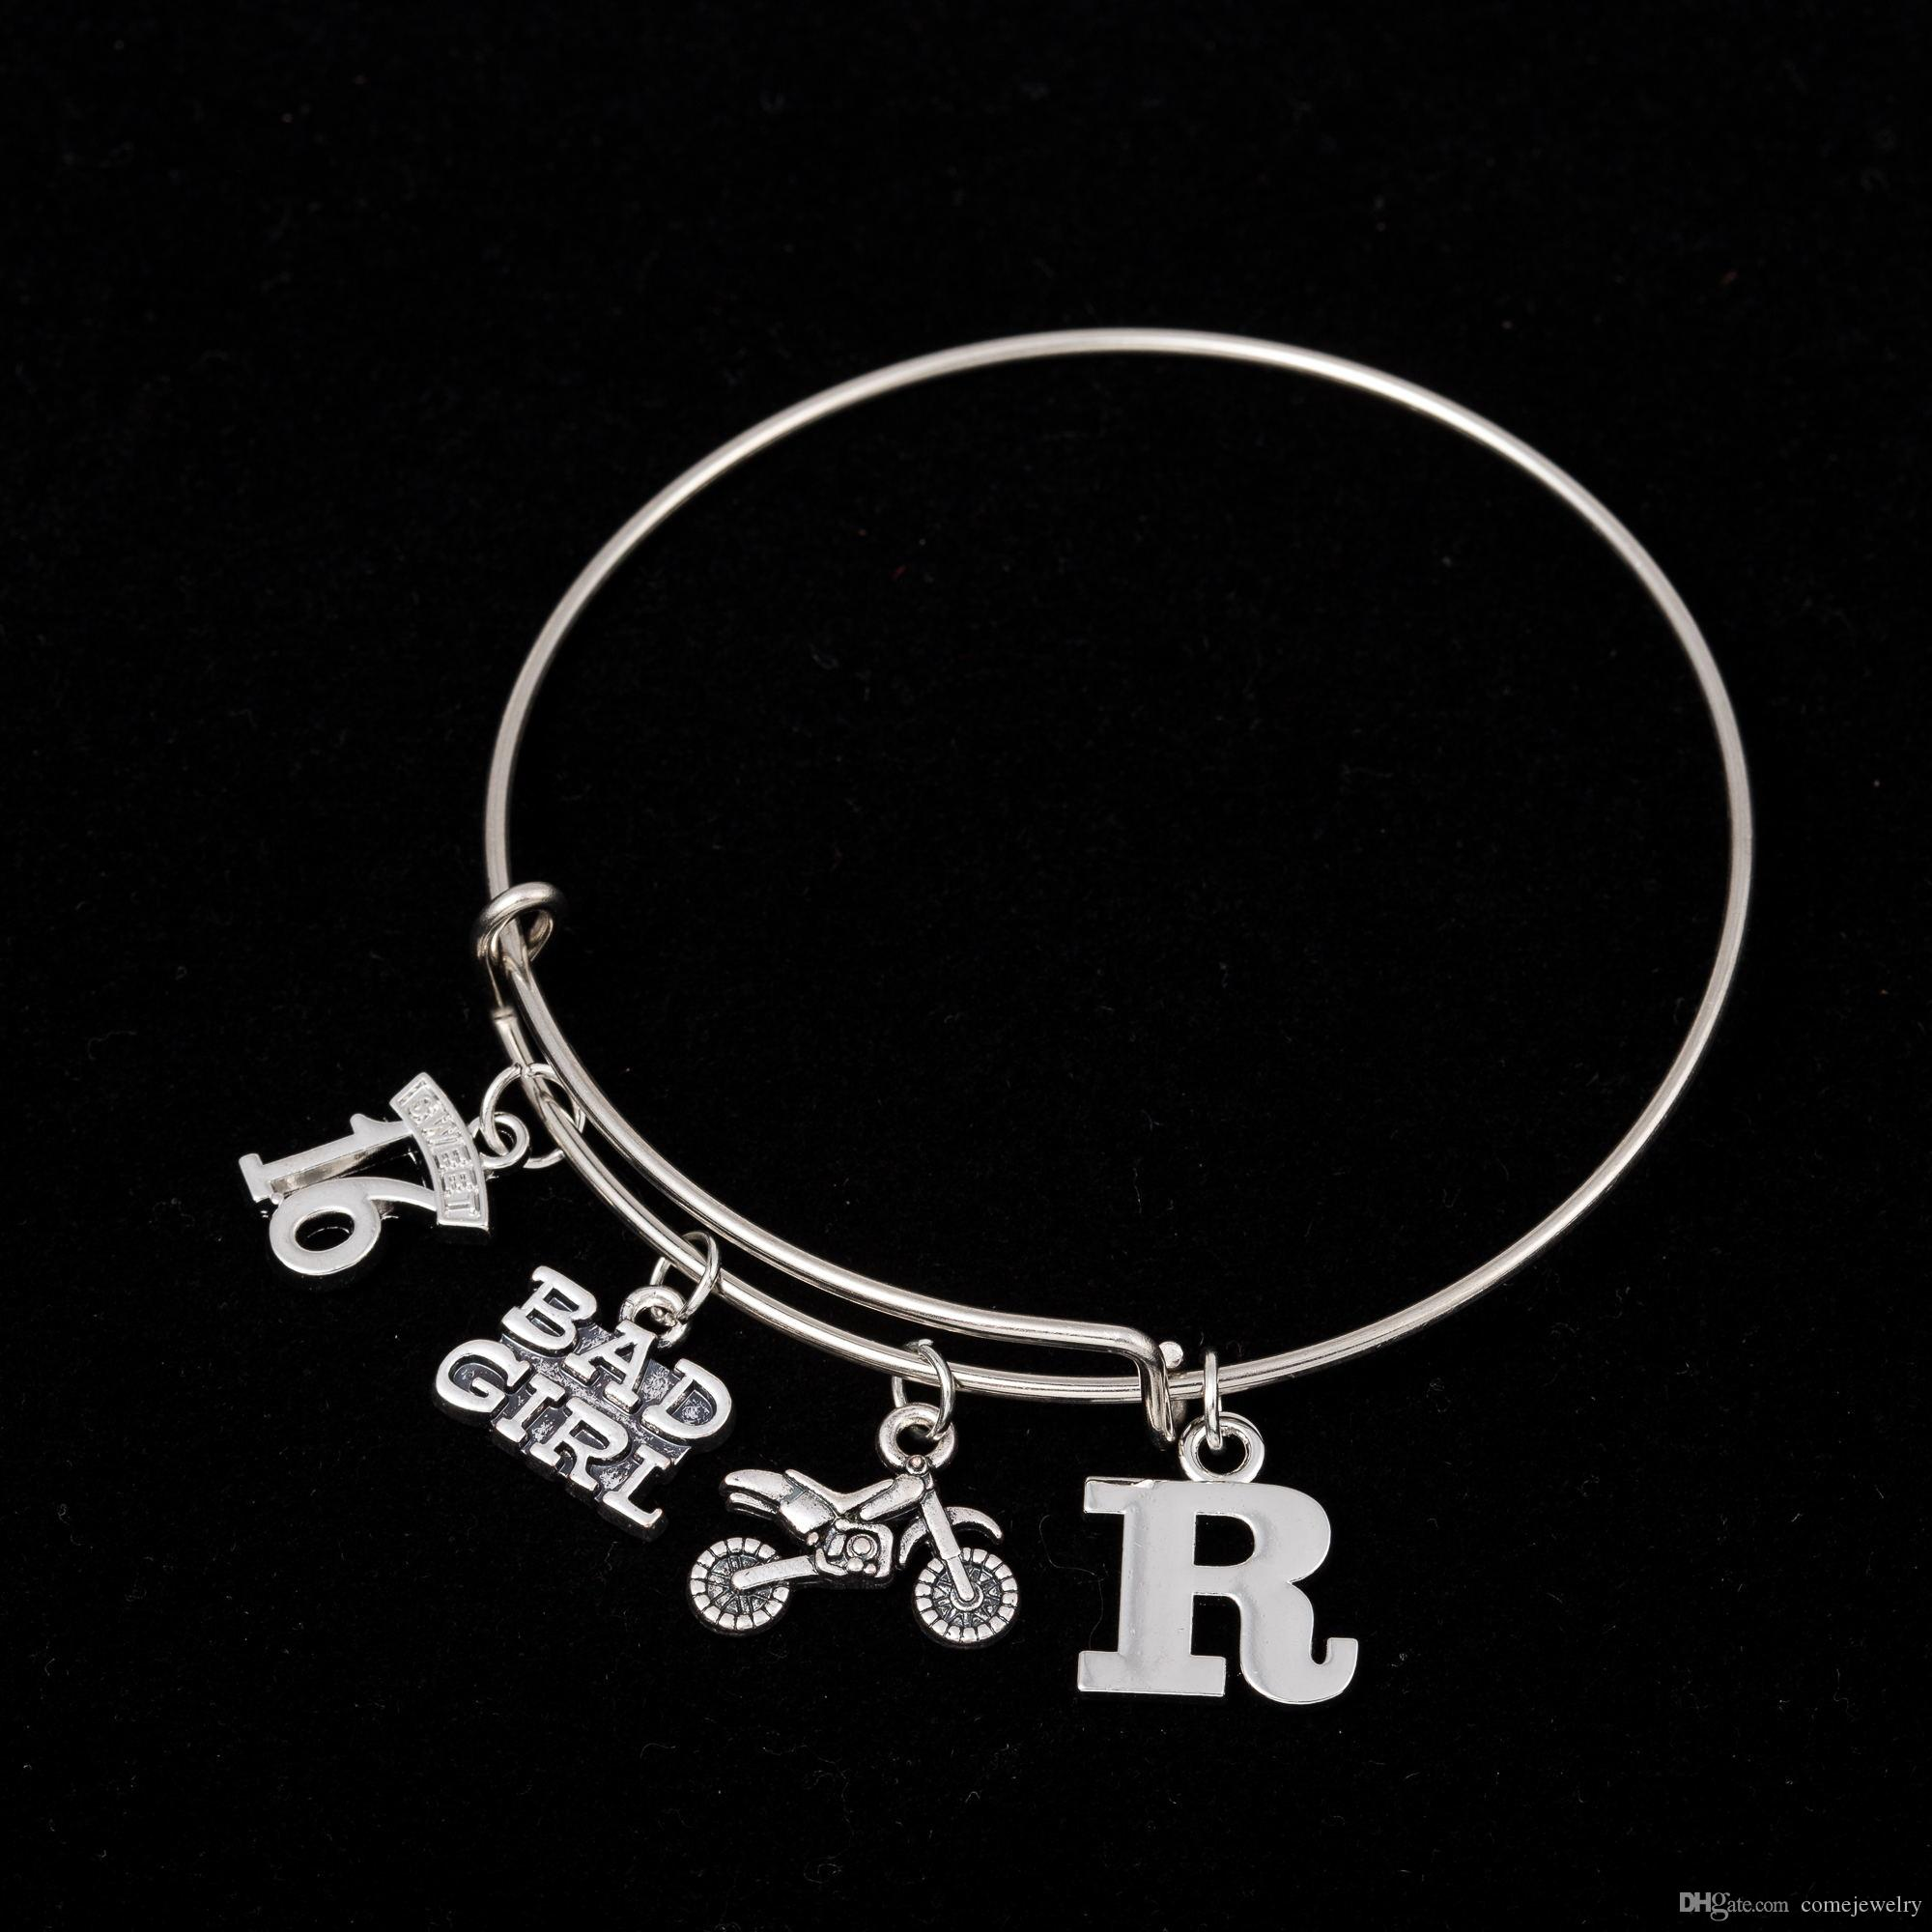 charm bracelets bangles bangle sp medical id link steel stainless heart bracelet